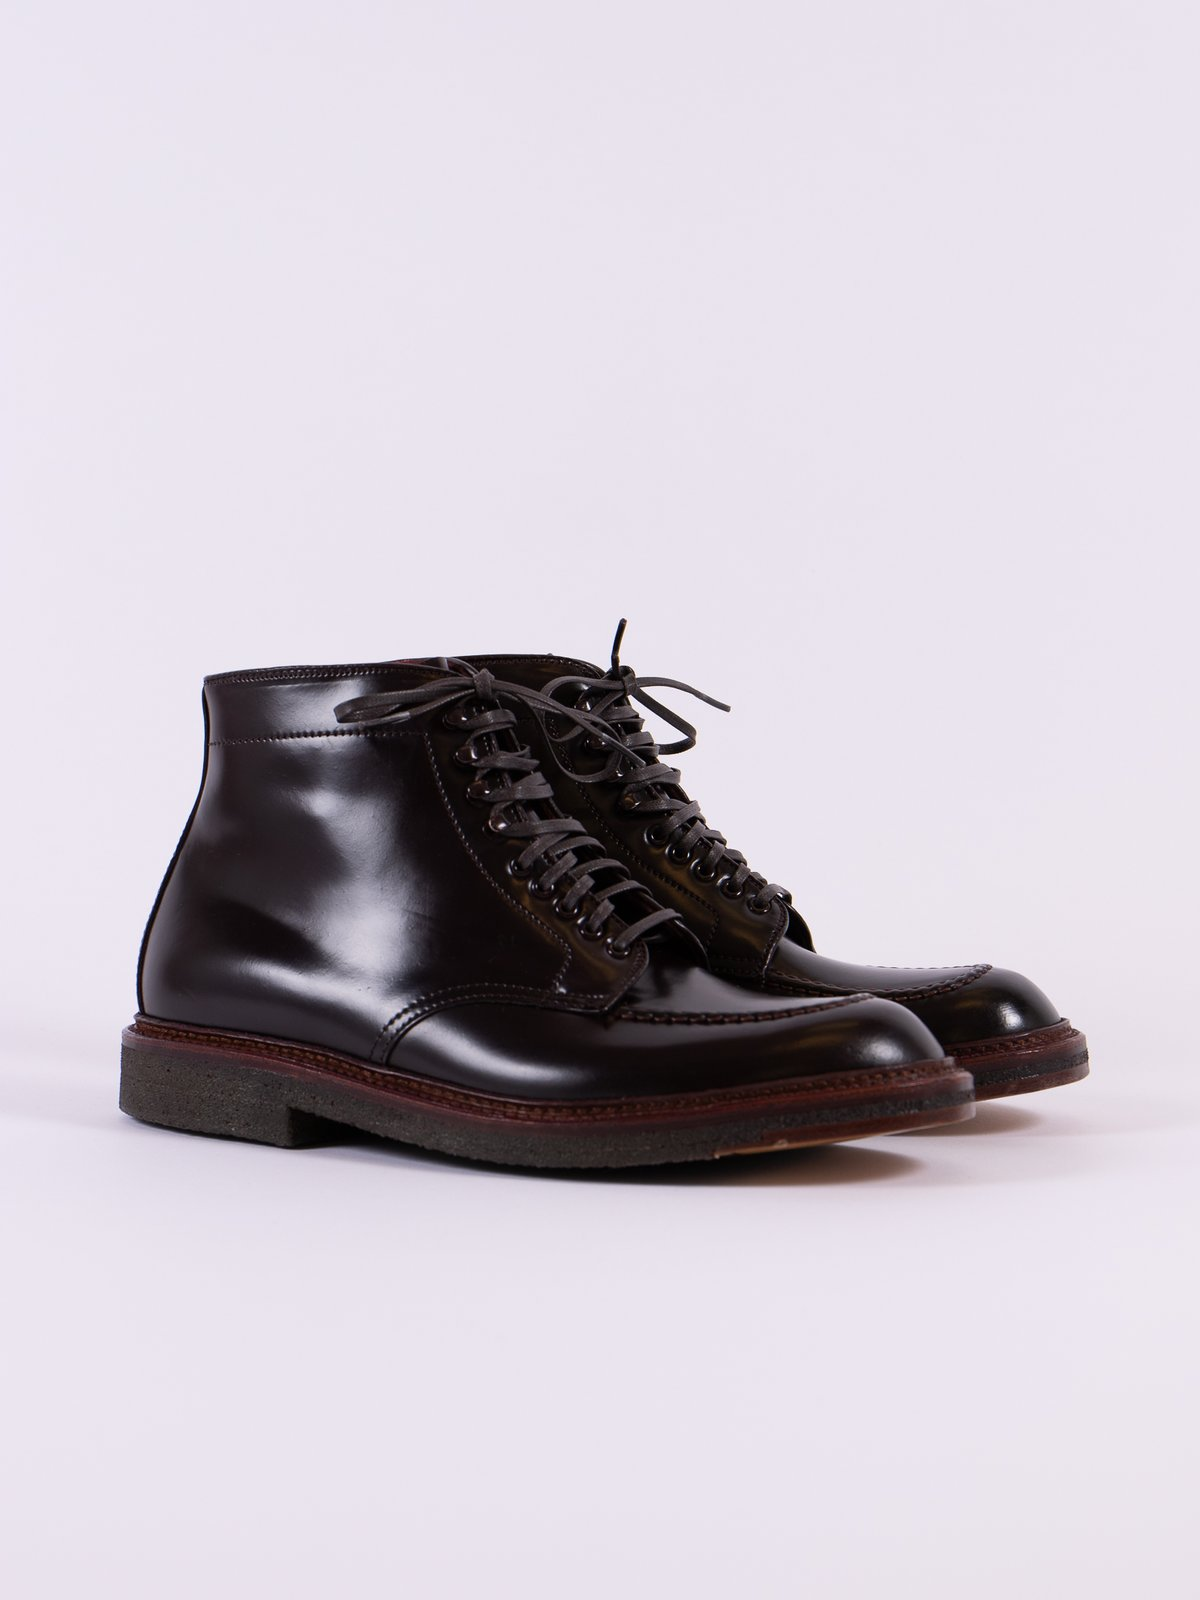 Color 8 Cordovan Indy Boot - Image 1